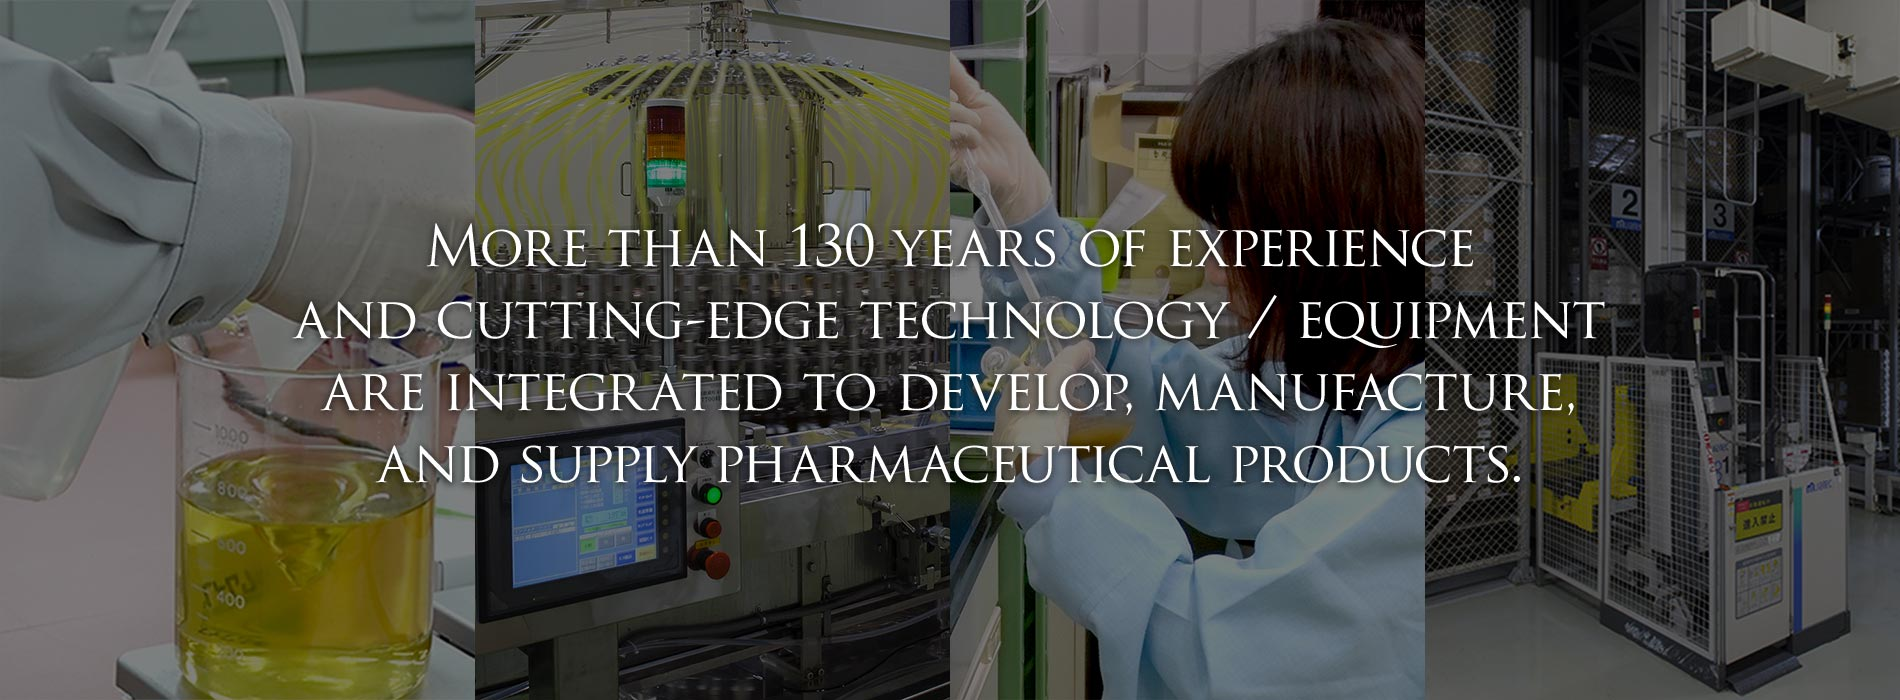 More than 130 years of experience and cutting-edge technology/equipment are integrated to develop, manufacture, and supply pharmaceutical products.